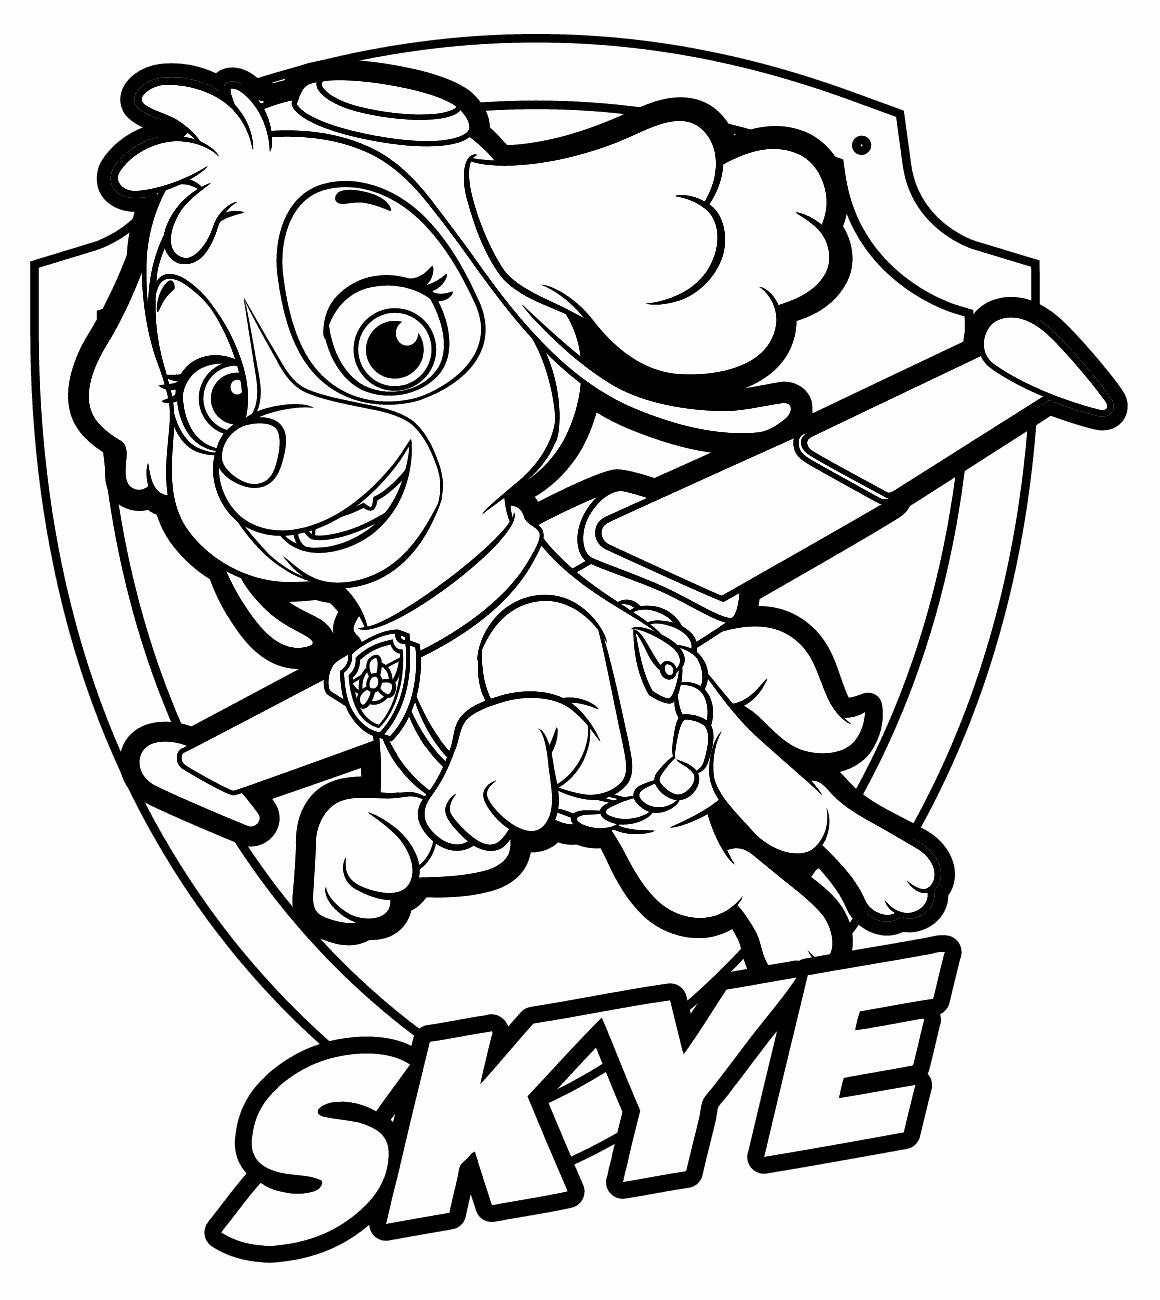 Paw Patrol Coloring Pages Paw Patrol Coloring Pages Sky At Getcolorings Free Printable